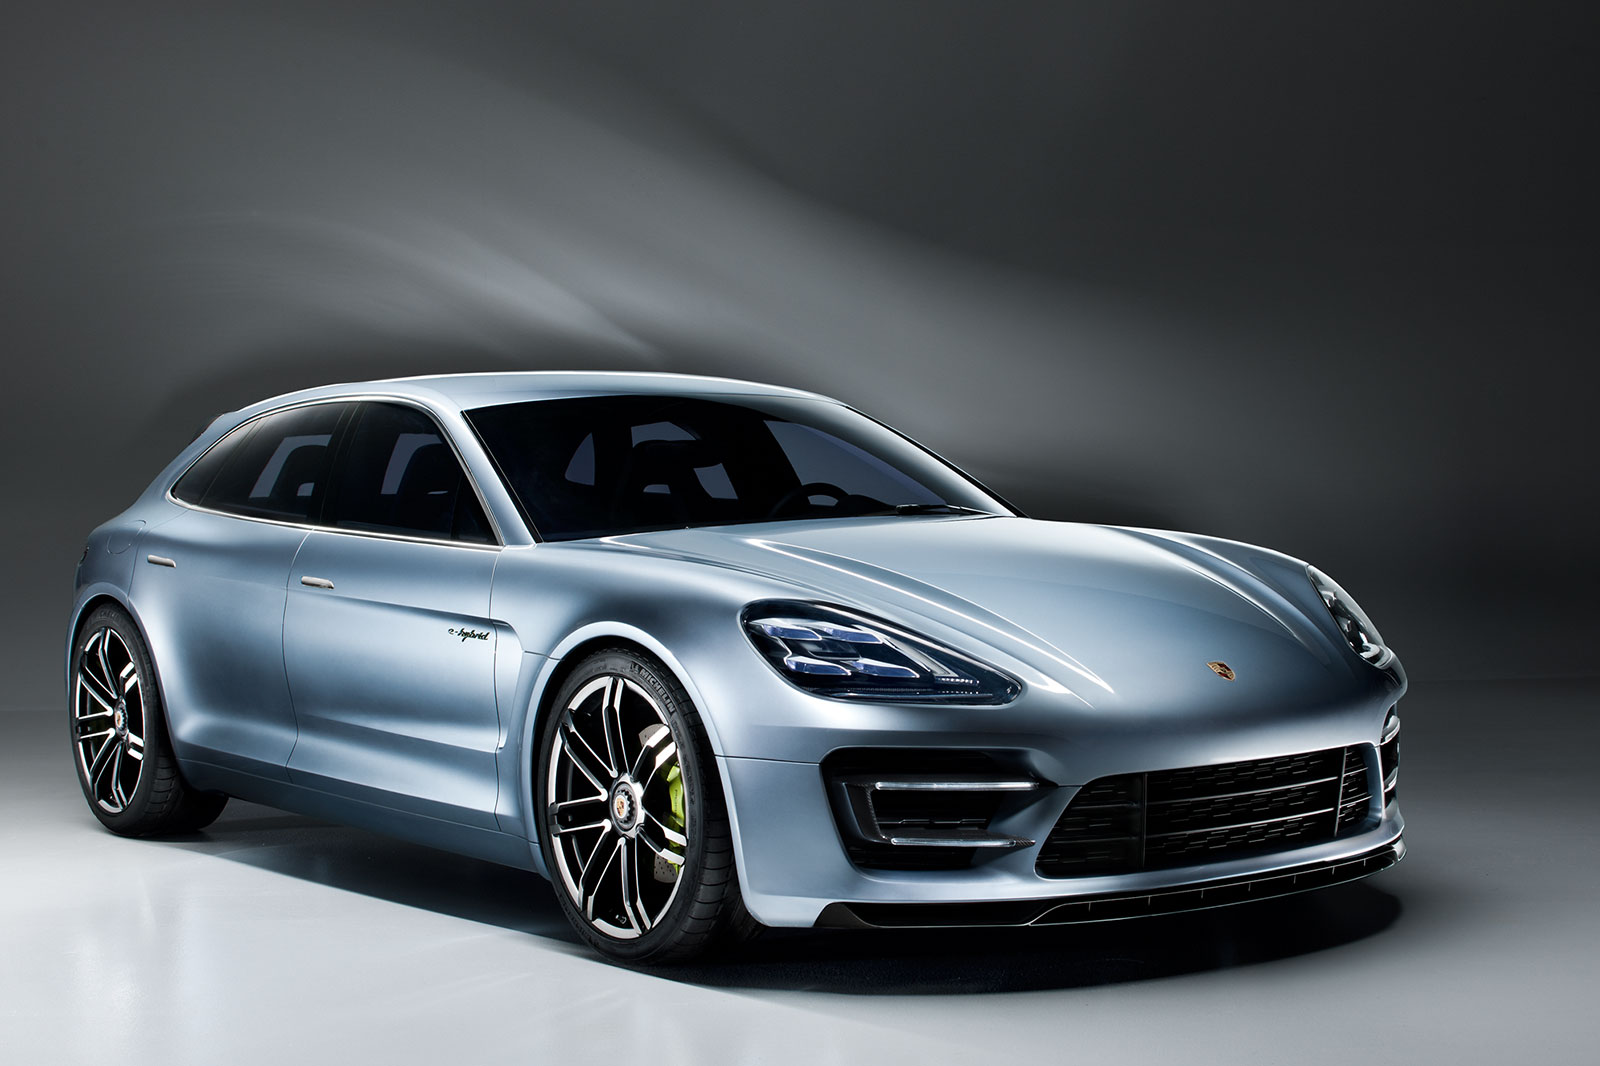 Porsche Hd Wallpapers 1080p: Porsche Car And Porsche Car Interiors Hd Wallpapers 1080p